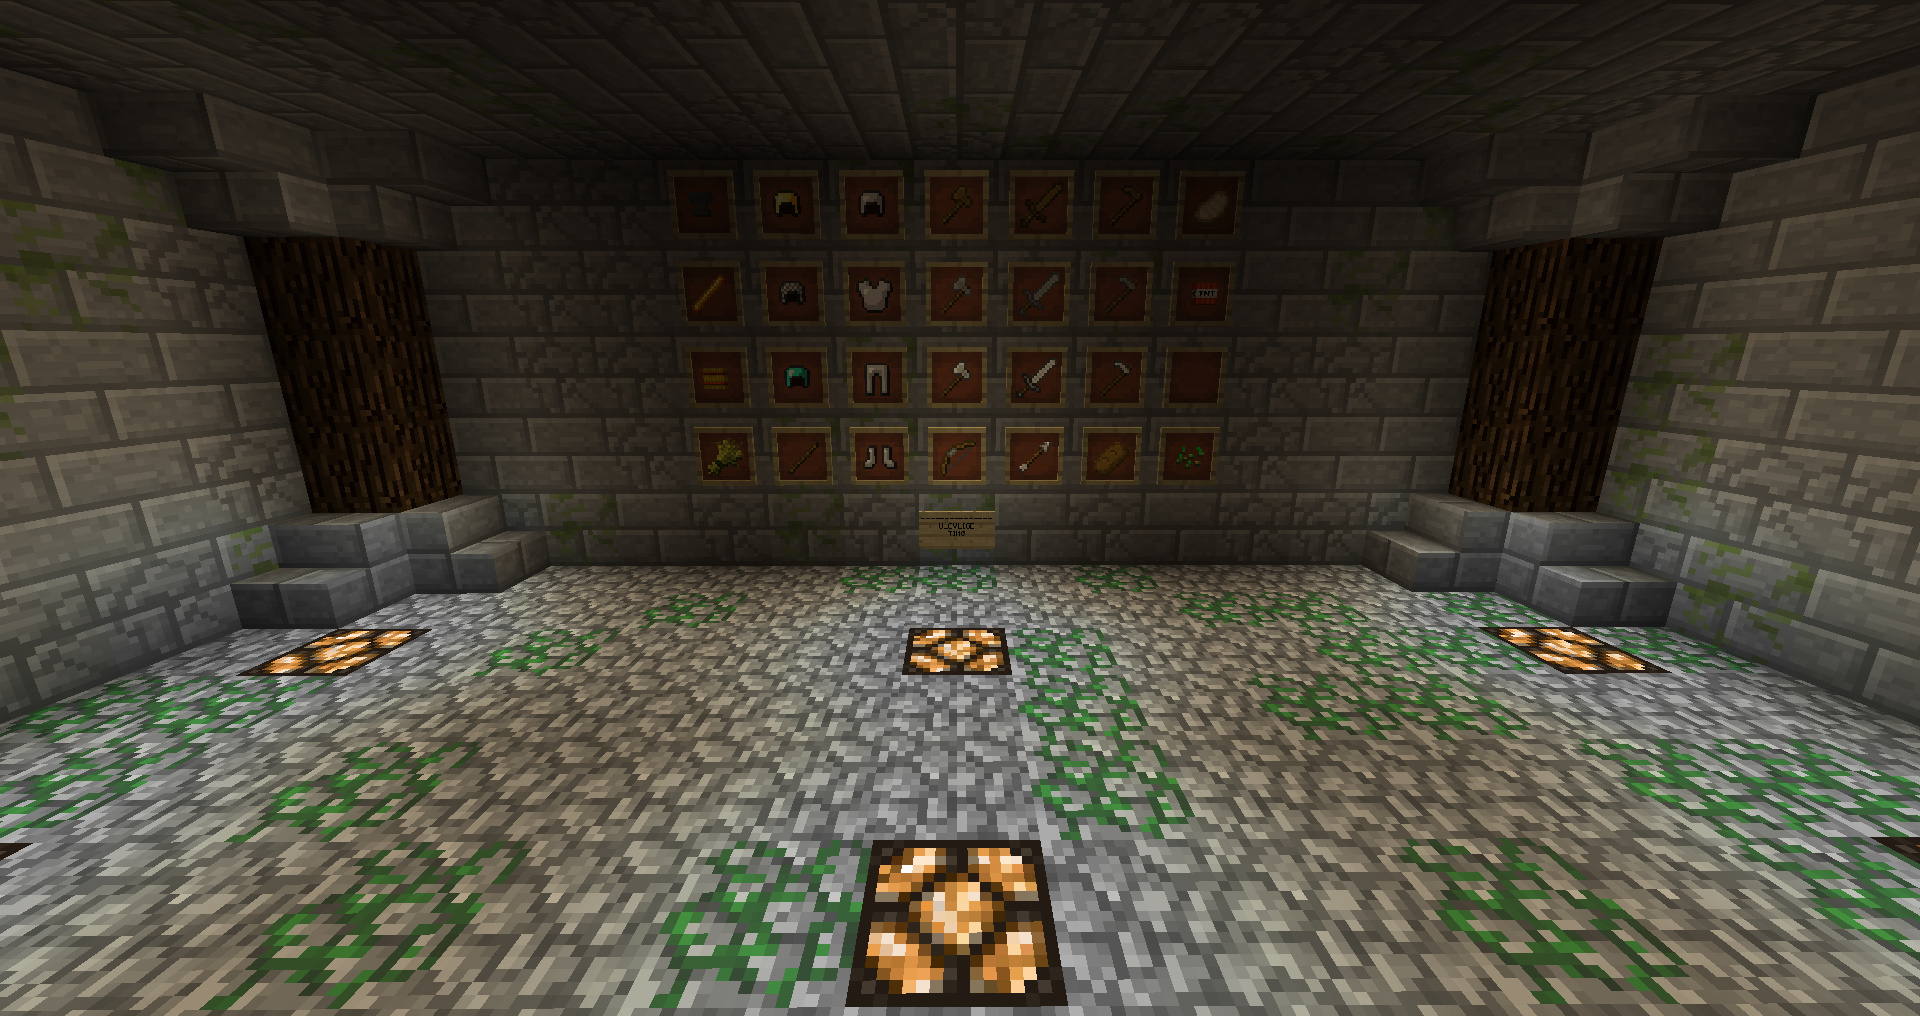 Minecraft Prison Server Download Map - modicpaymeu : Inspired by